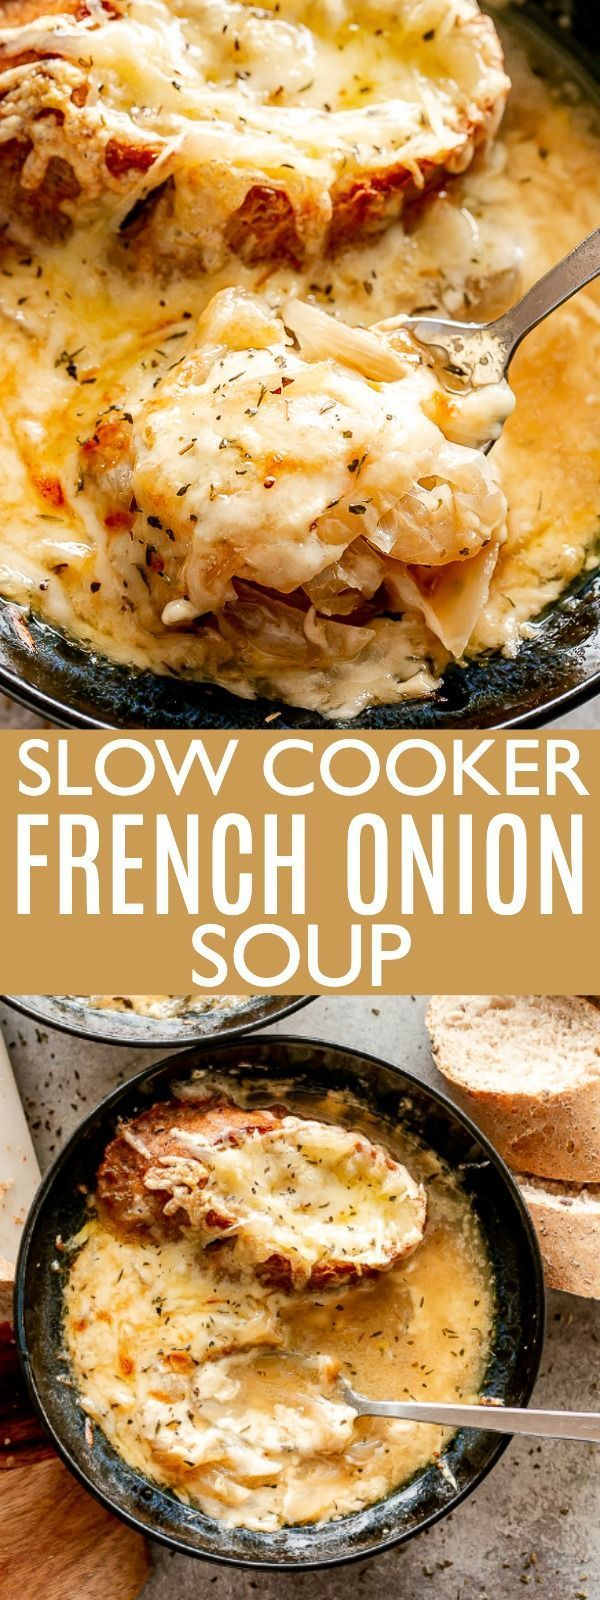 Apr 5, 2020 – Slow Cooker French Onion Soup – A classic French Onion Soup prepared in the crockpot and loaded with incre…